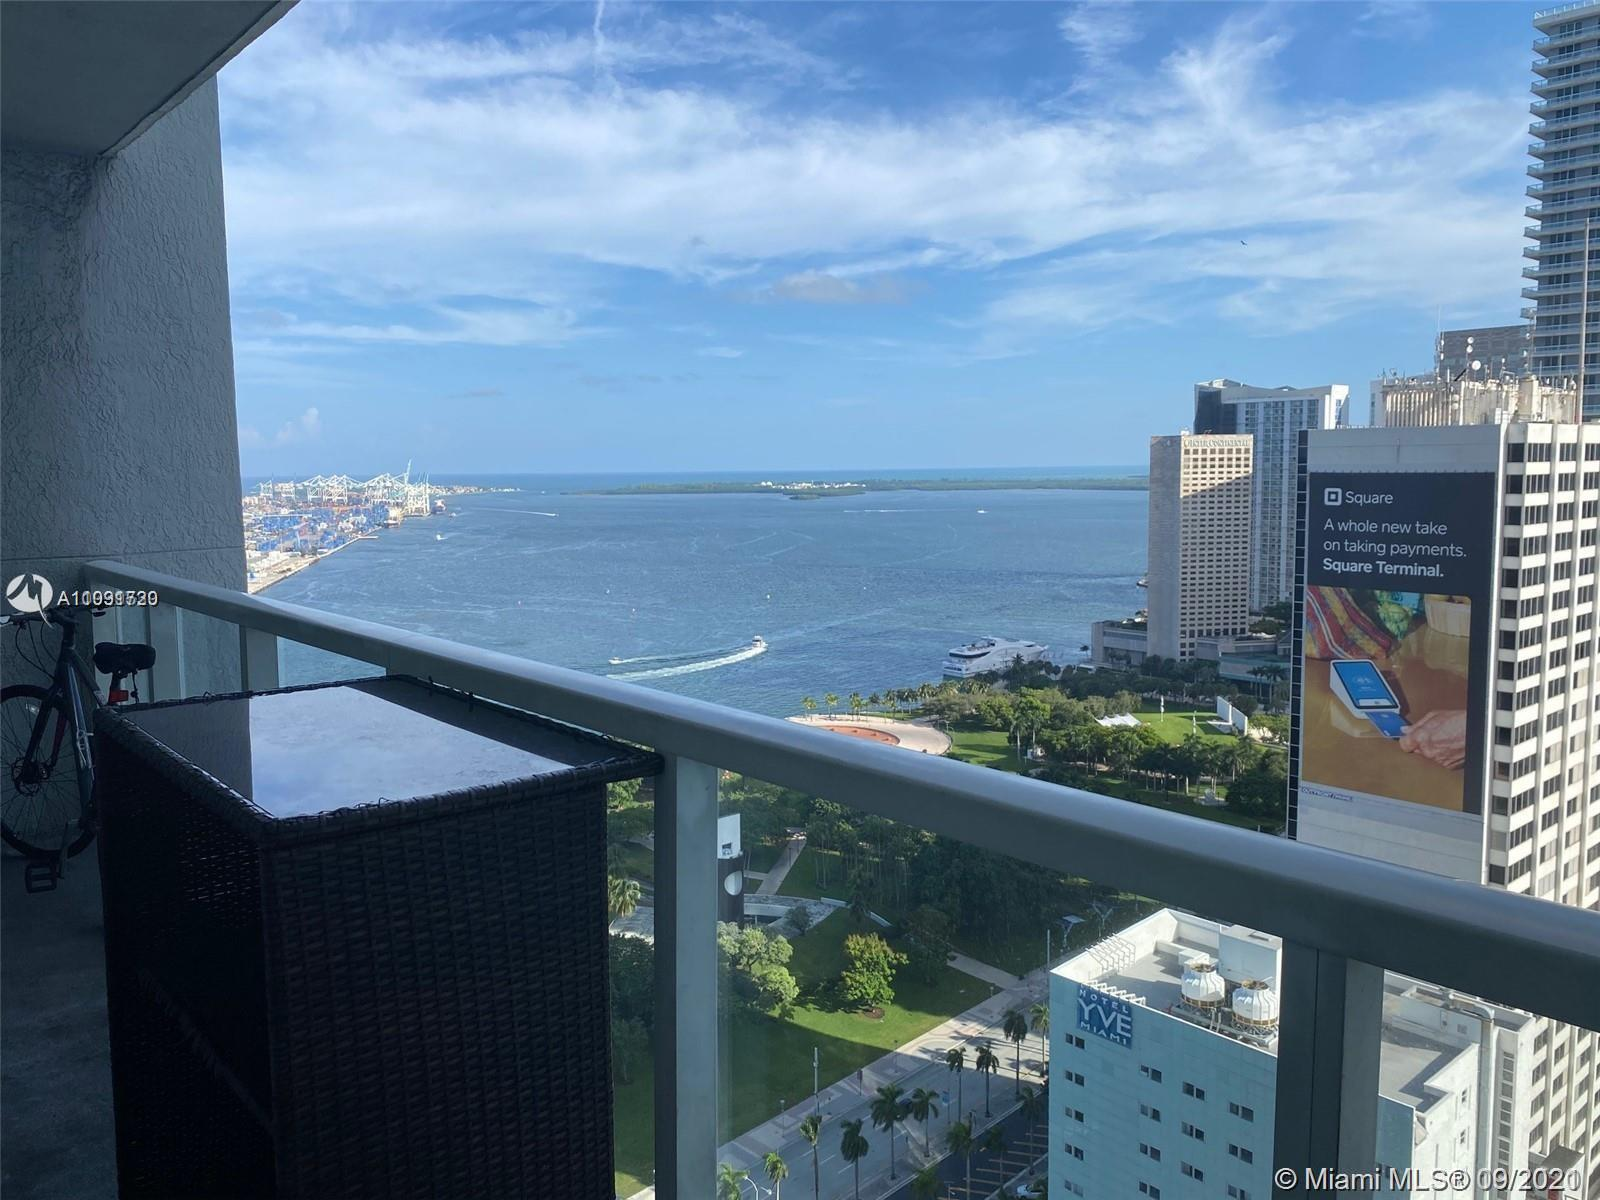 SPACIOUS STUDIO WITH OPEN LAYOUT, LARGE BALCONY AND STUNNING VIEWS OF BISCAYNE BAY & BAYFRONT PARK.